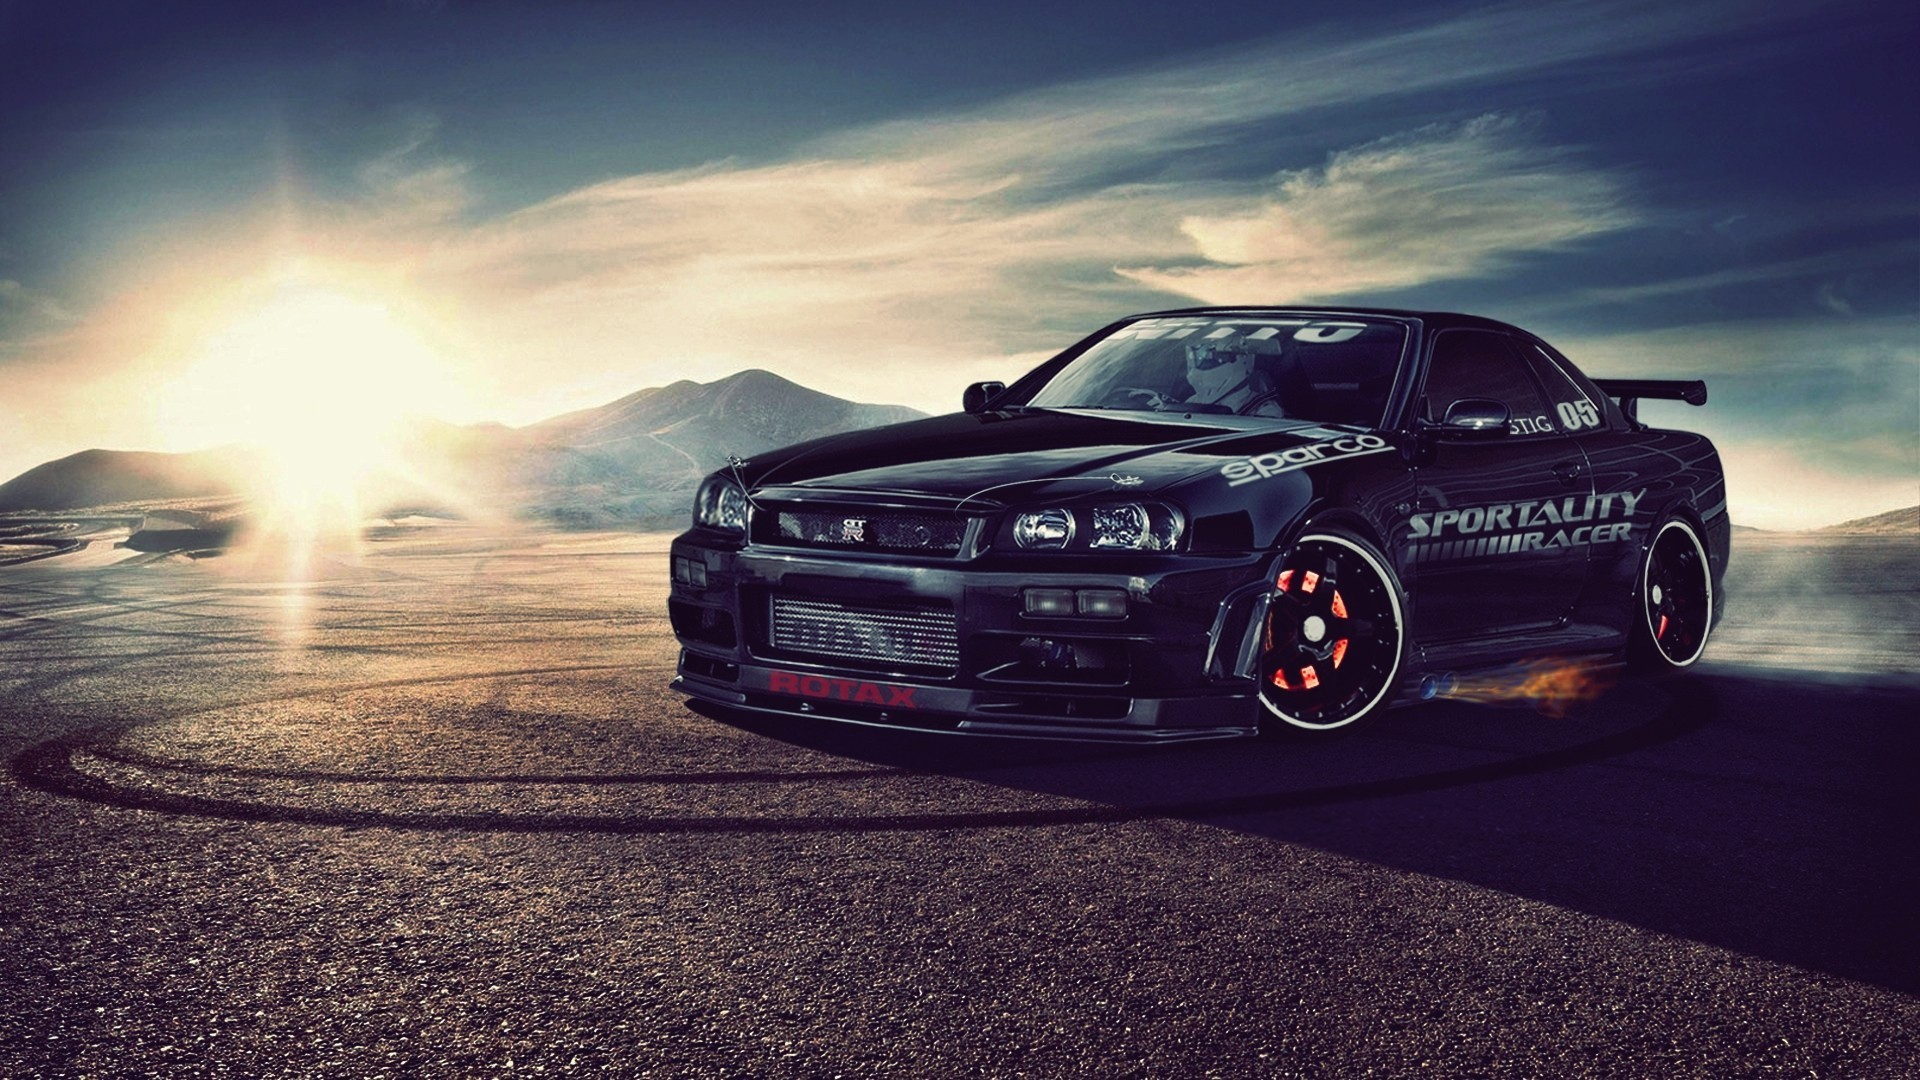 Drifting Cars Wallpapers 77 Images